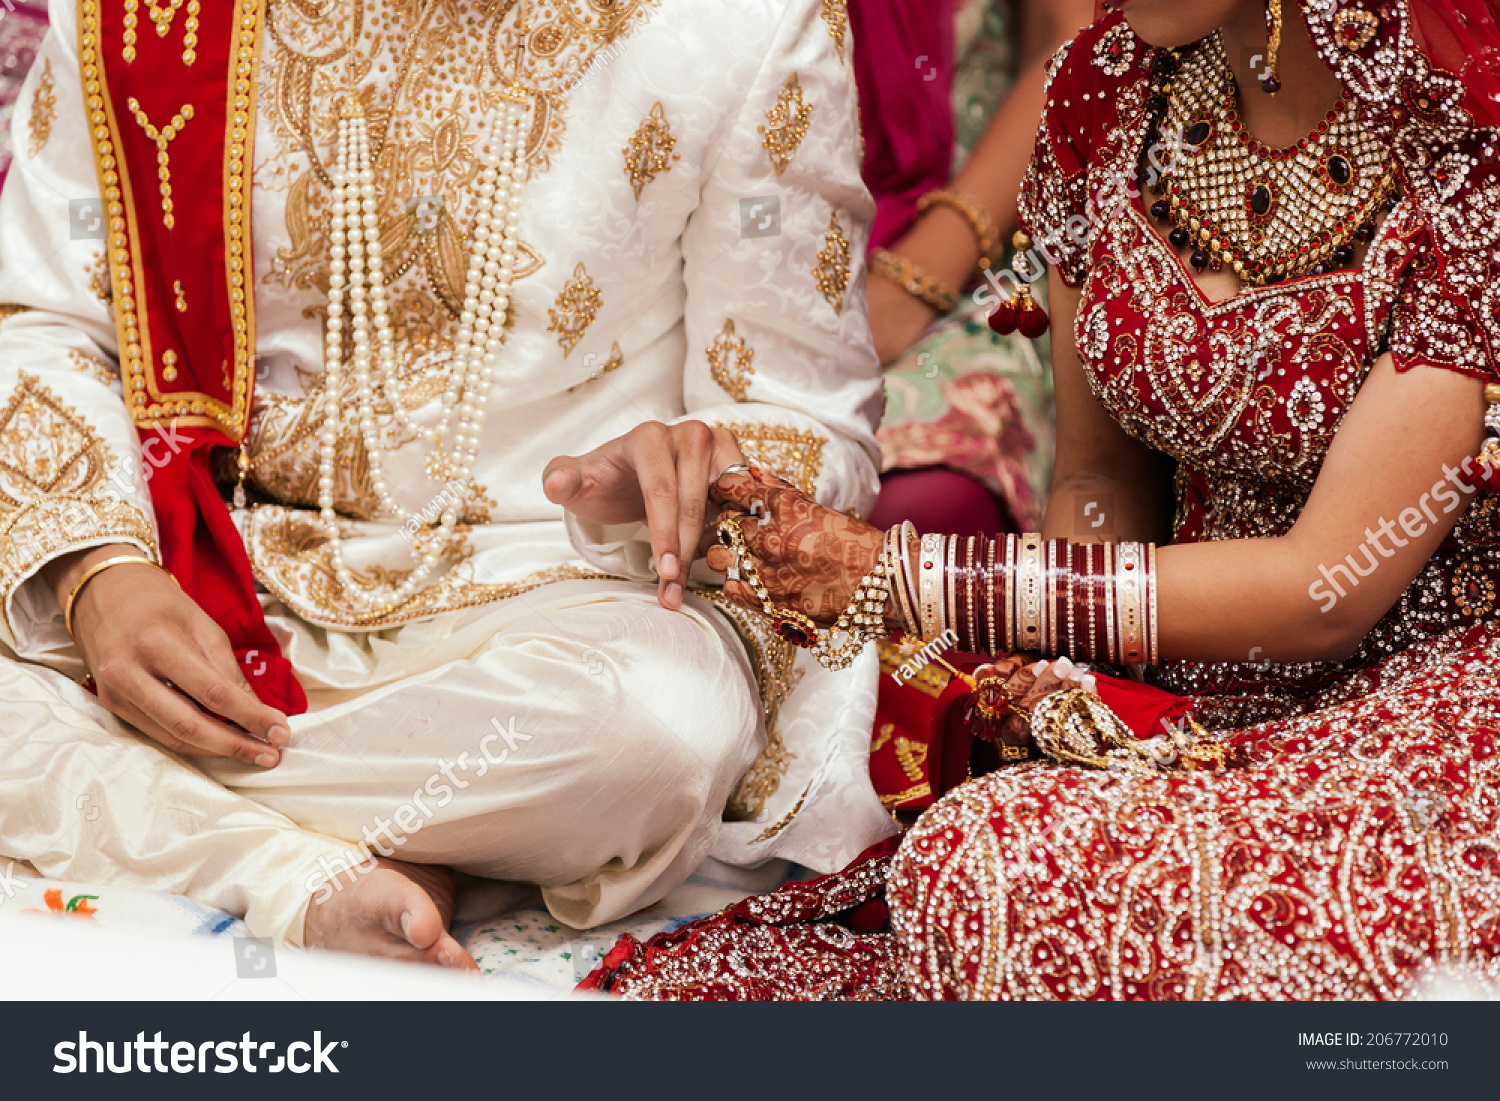 wedding rings at the indian ceremony - Indian Wedding Rings